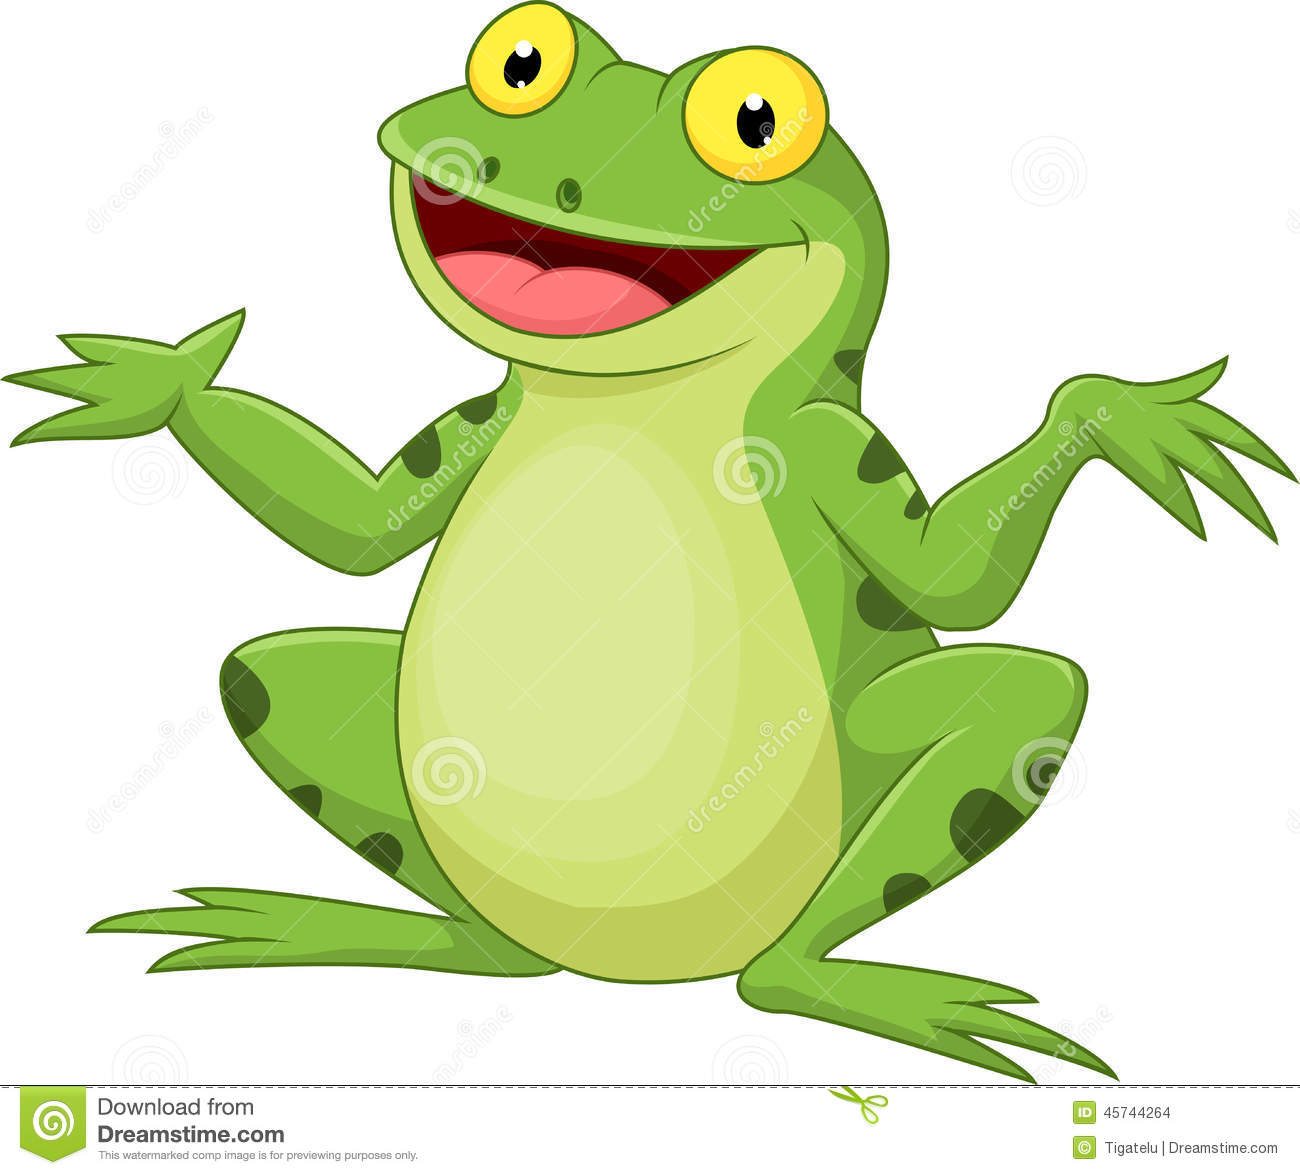 Funny Cartoon Green Frog Stock Vector - Image: 45744264